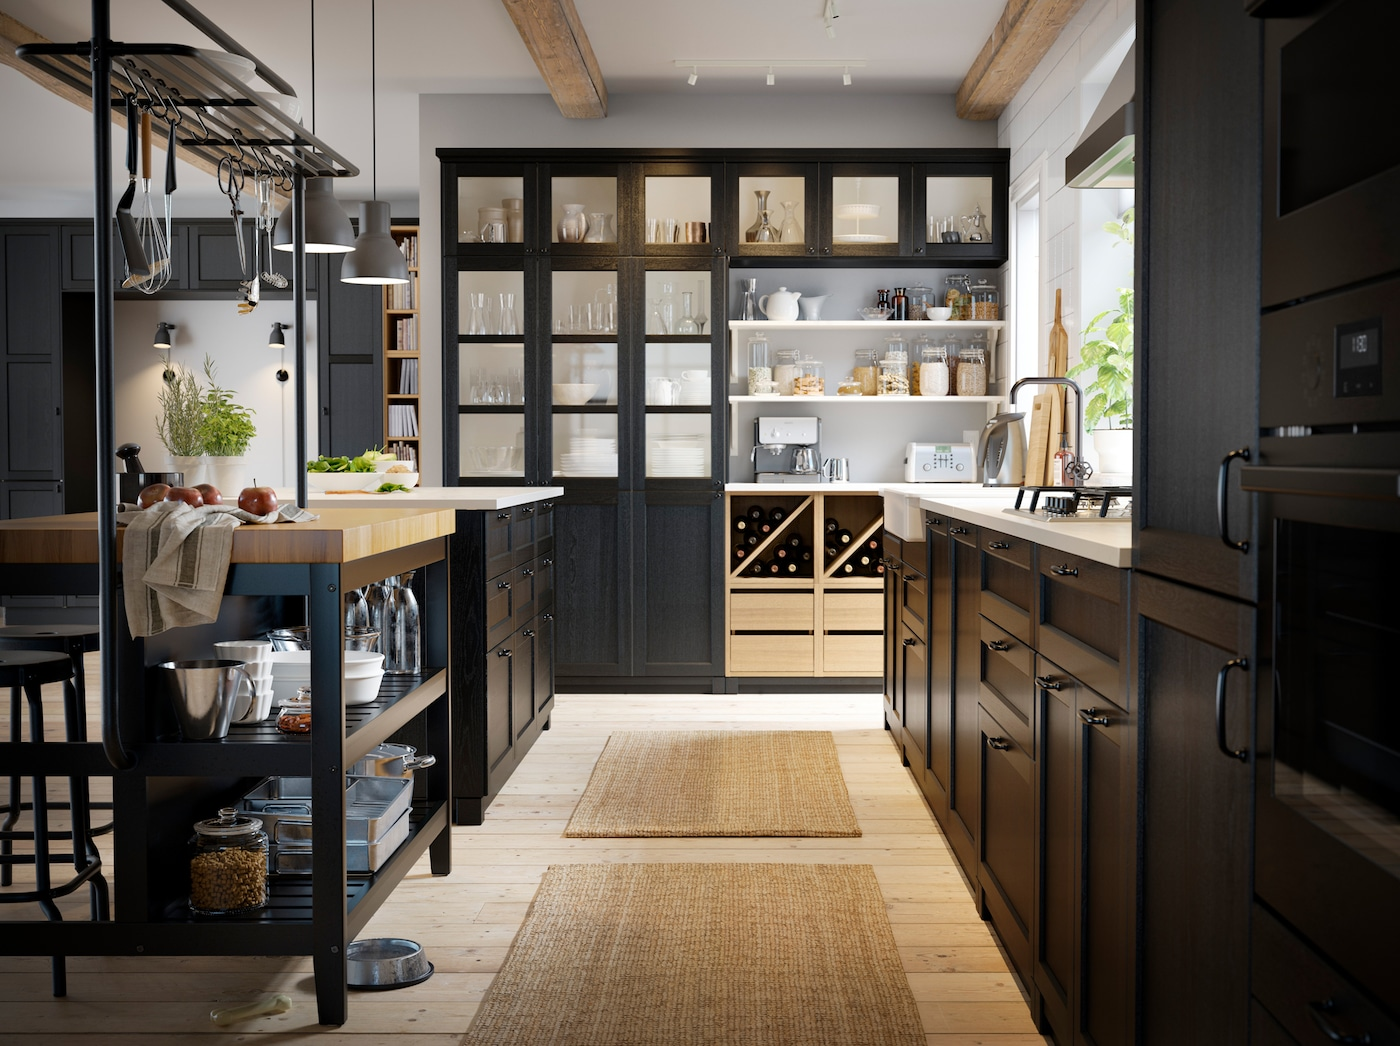 An overview of the IKEA VADHOLMA kitchen island, light wood open storage shelves and LERHYTTAN black front kitchen cabinet doors.